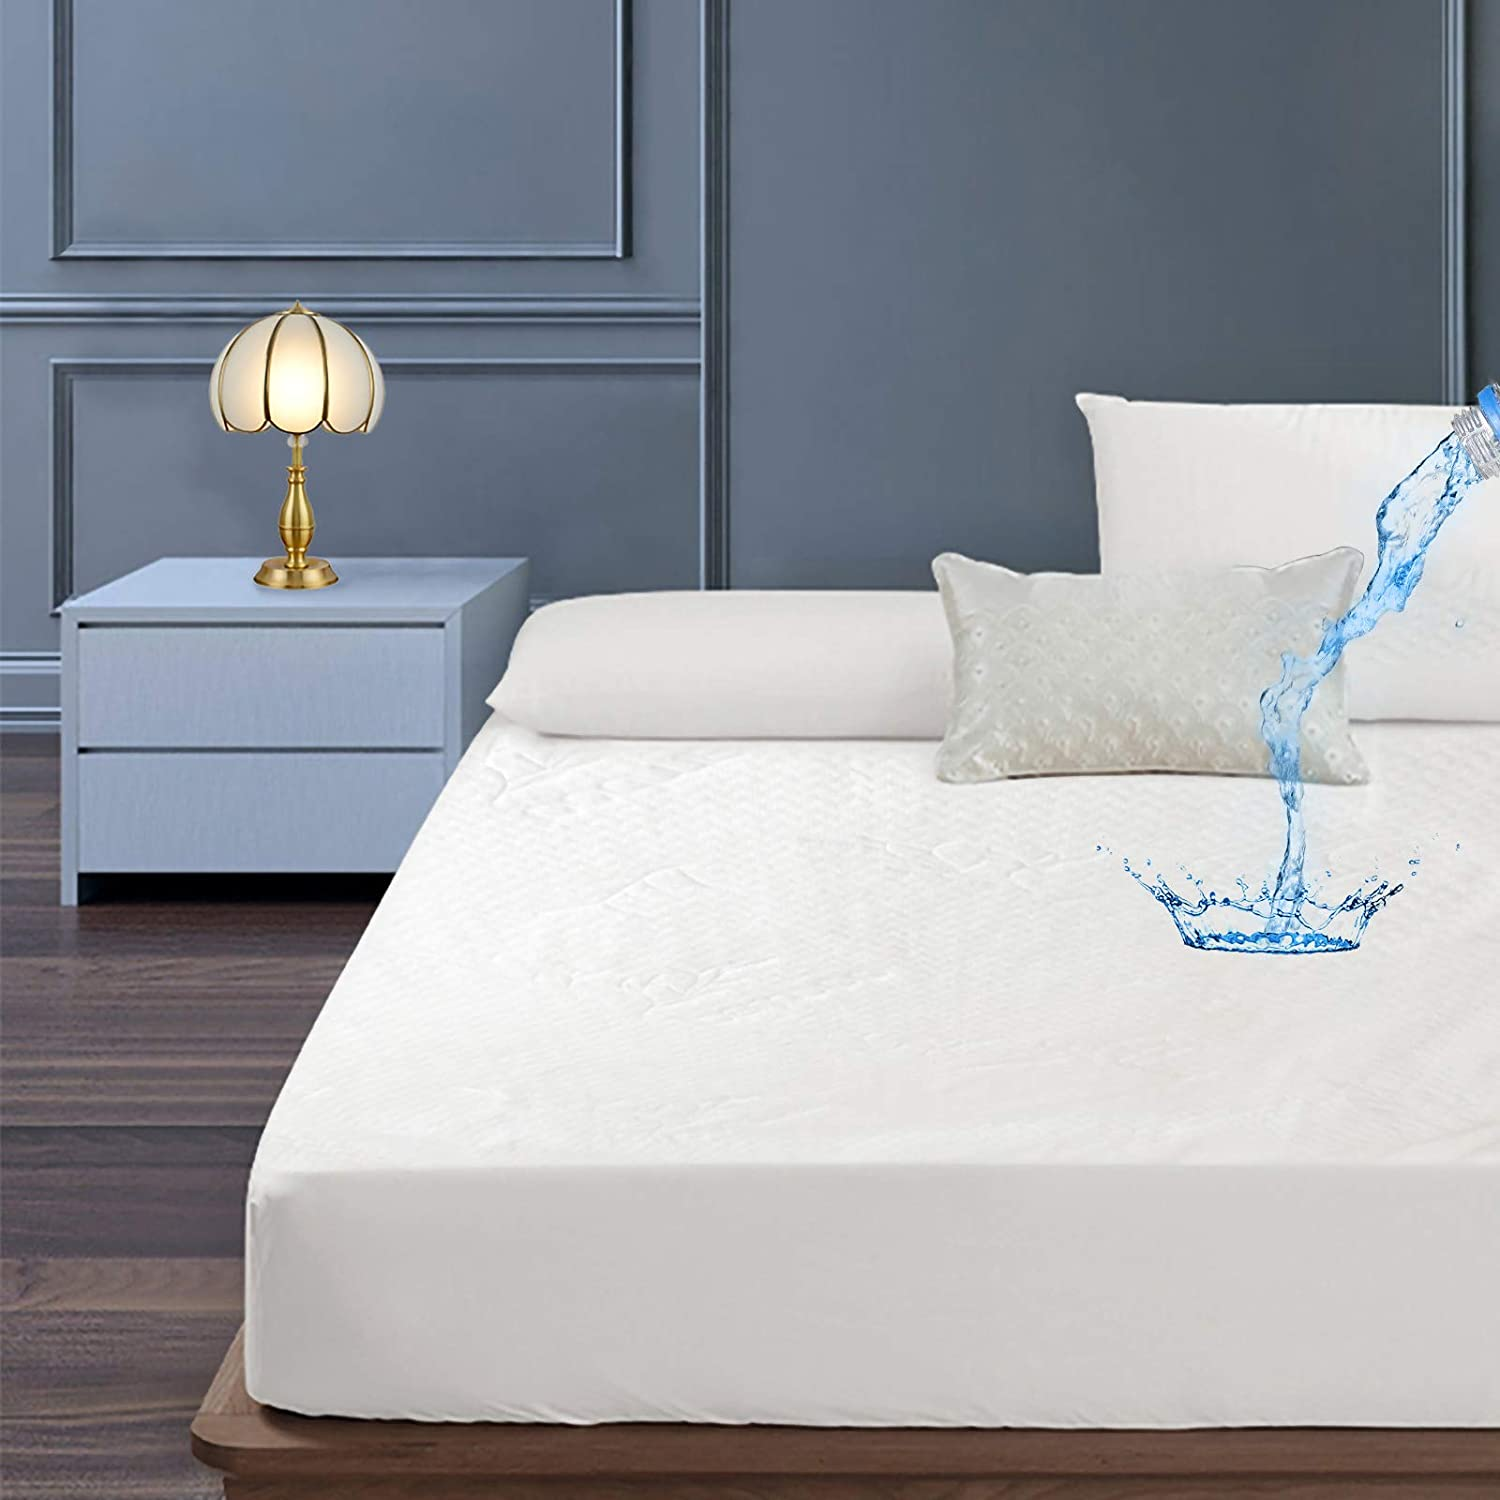 YingTai Premium Bamboo Queen Mattress Protector,Waterproof Encasement Soft and Breathable Mattress Cover Fits 8